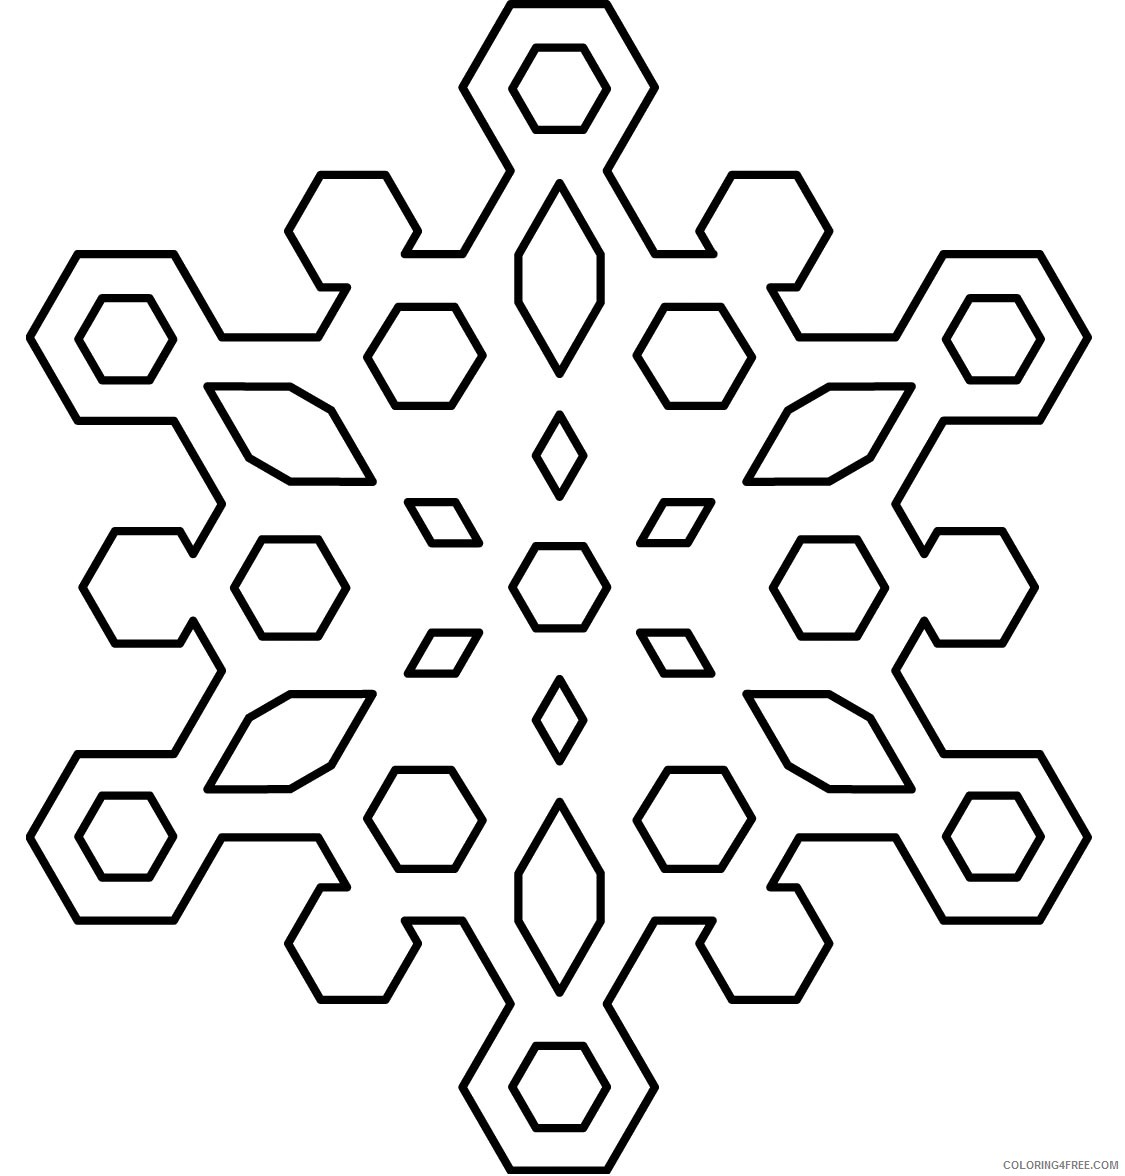 printable snowflake coloring pages Coloring4free